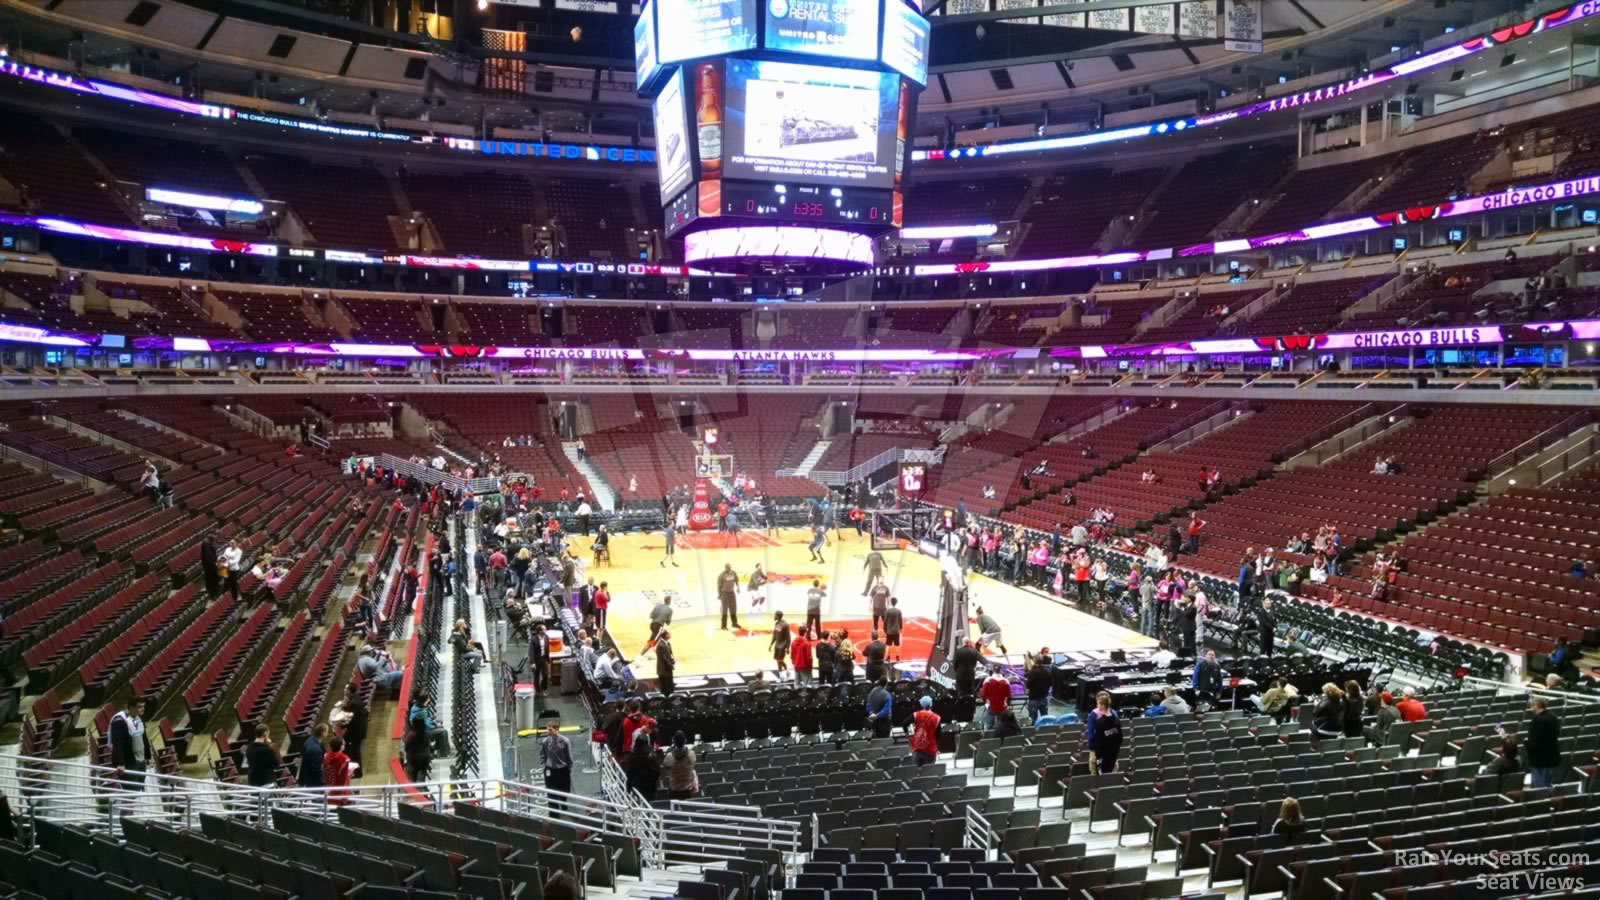 United Center Section 118 - Chicago Bulls - RateYourSeats.com